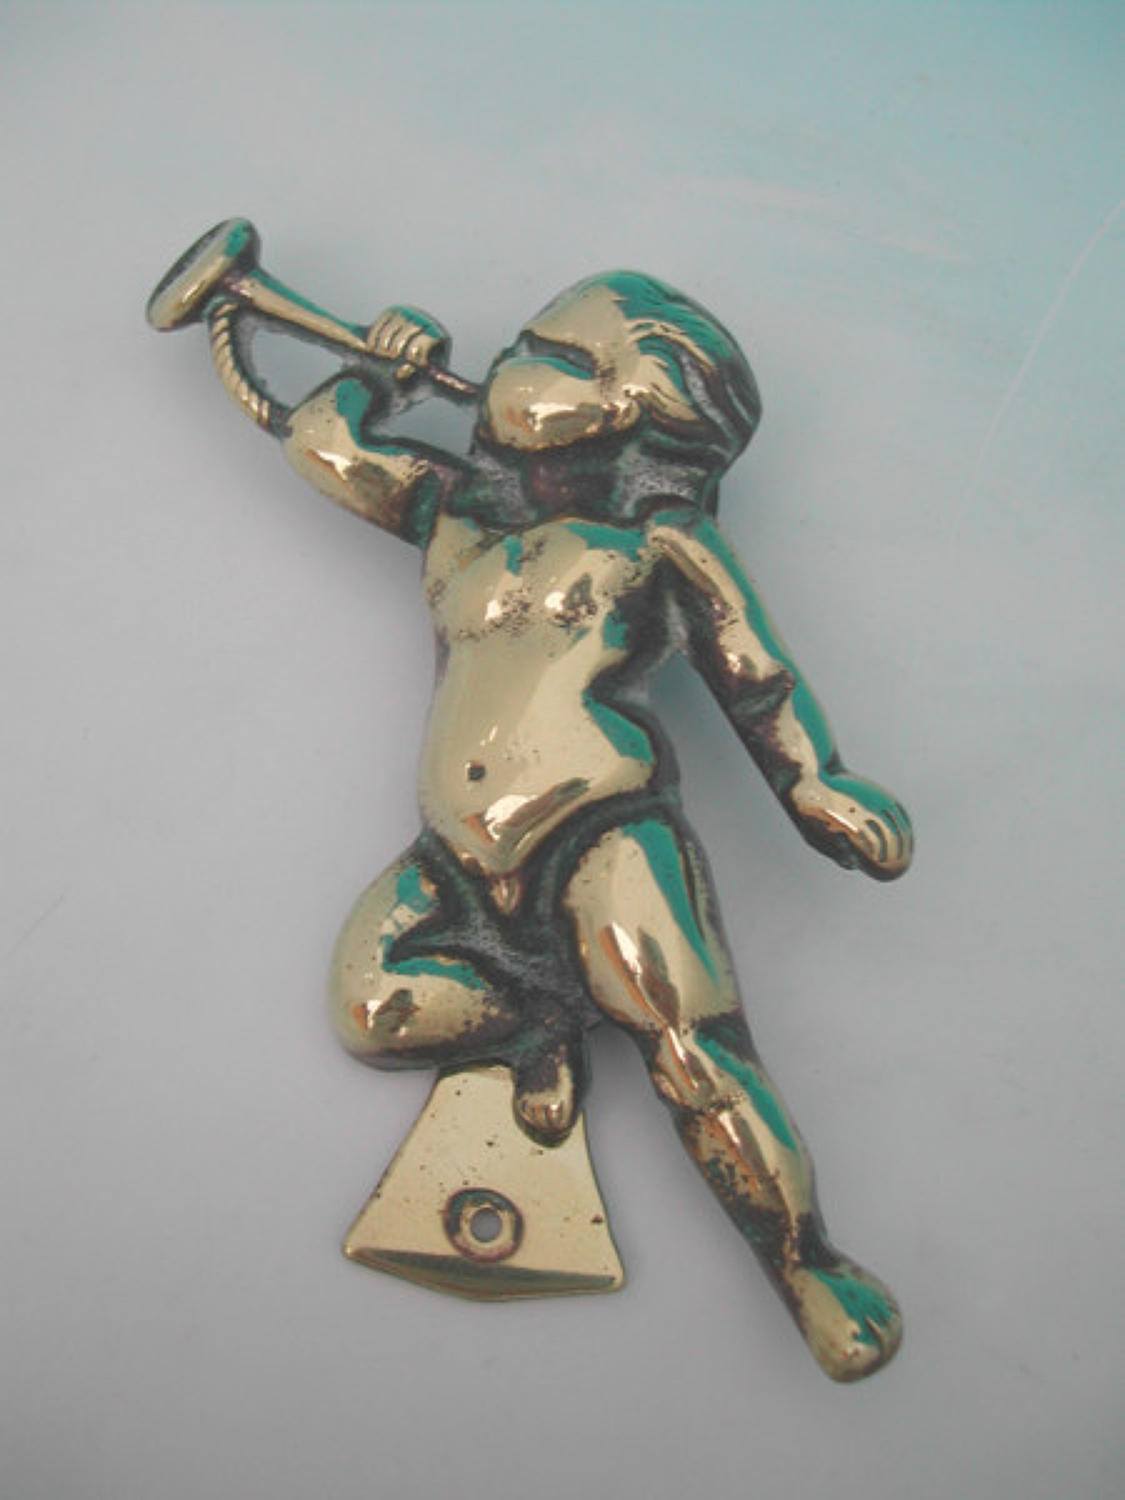 19thc Brass Cherub Door Knocker. English C1900